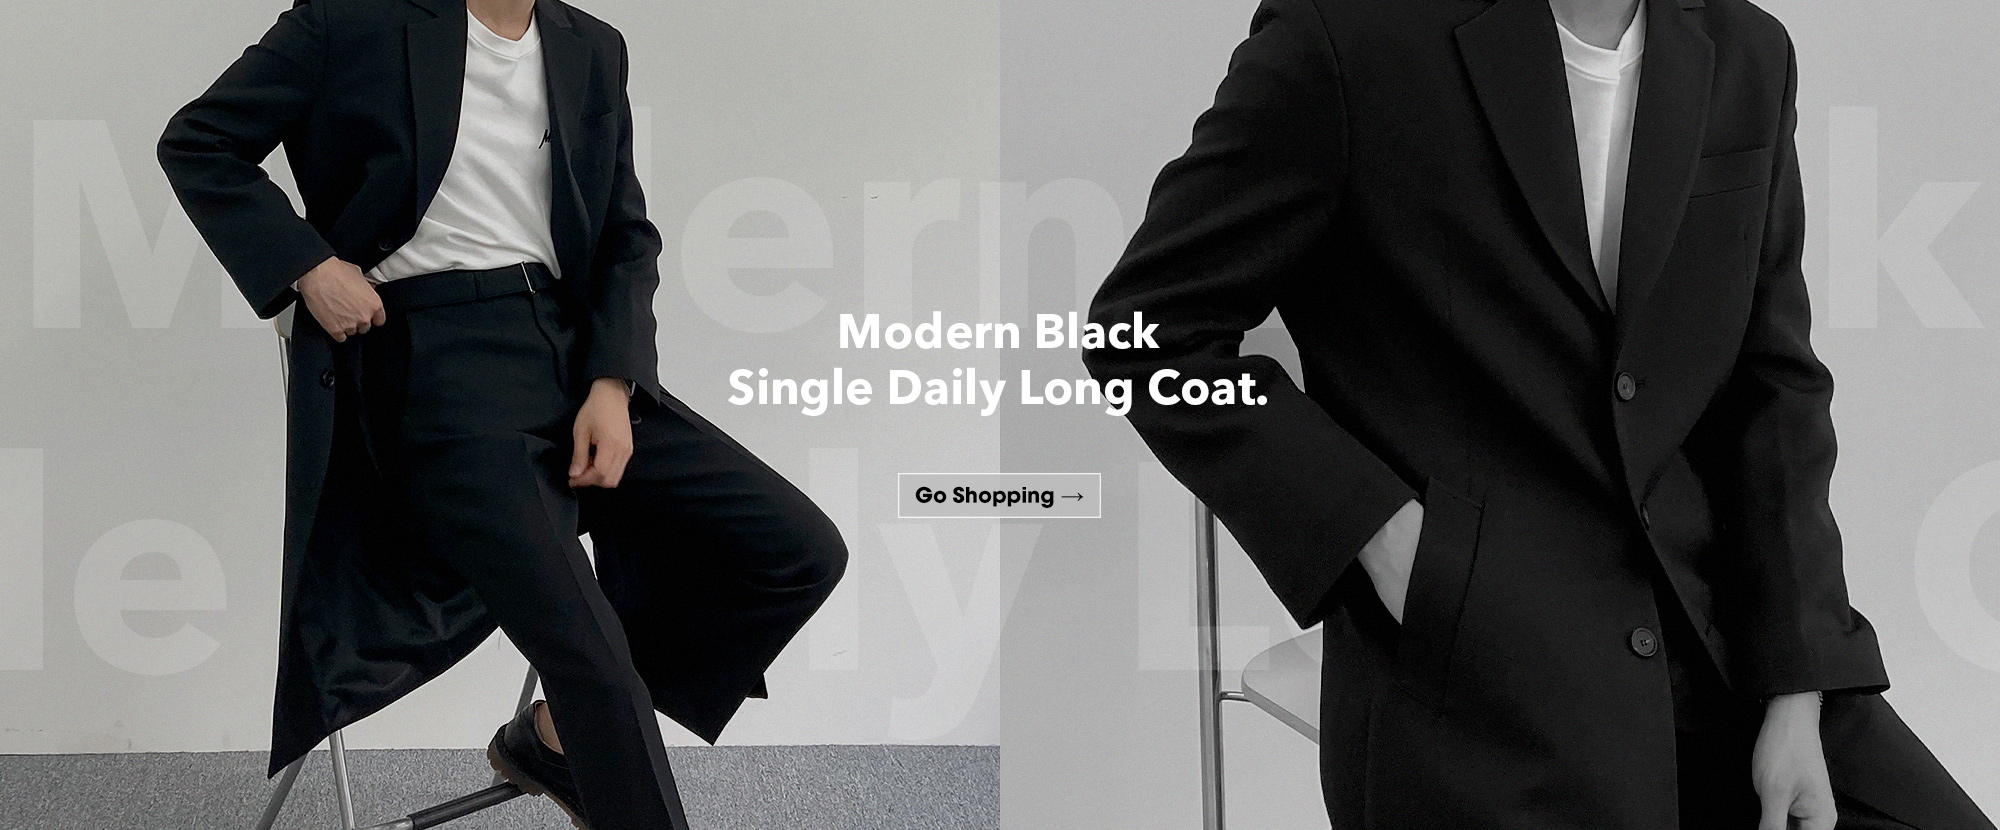 Modern Black Long Coat.